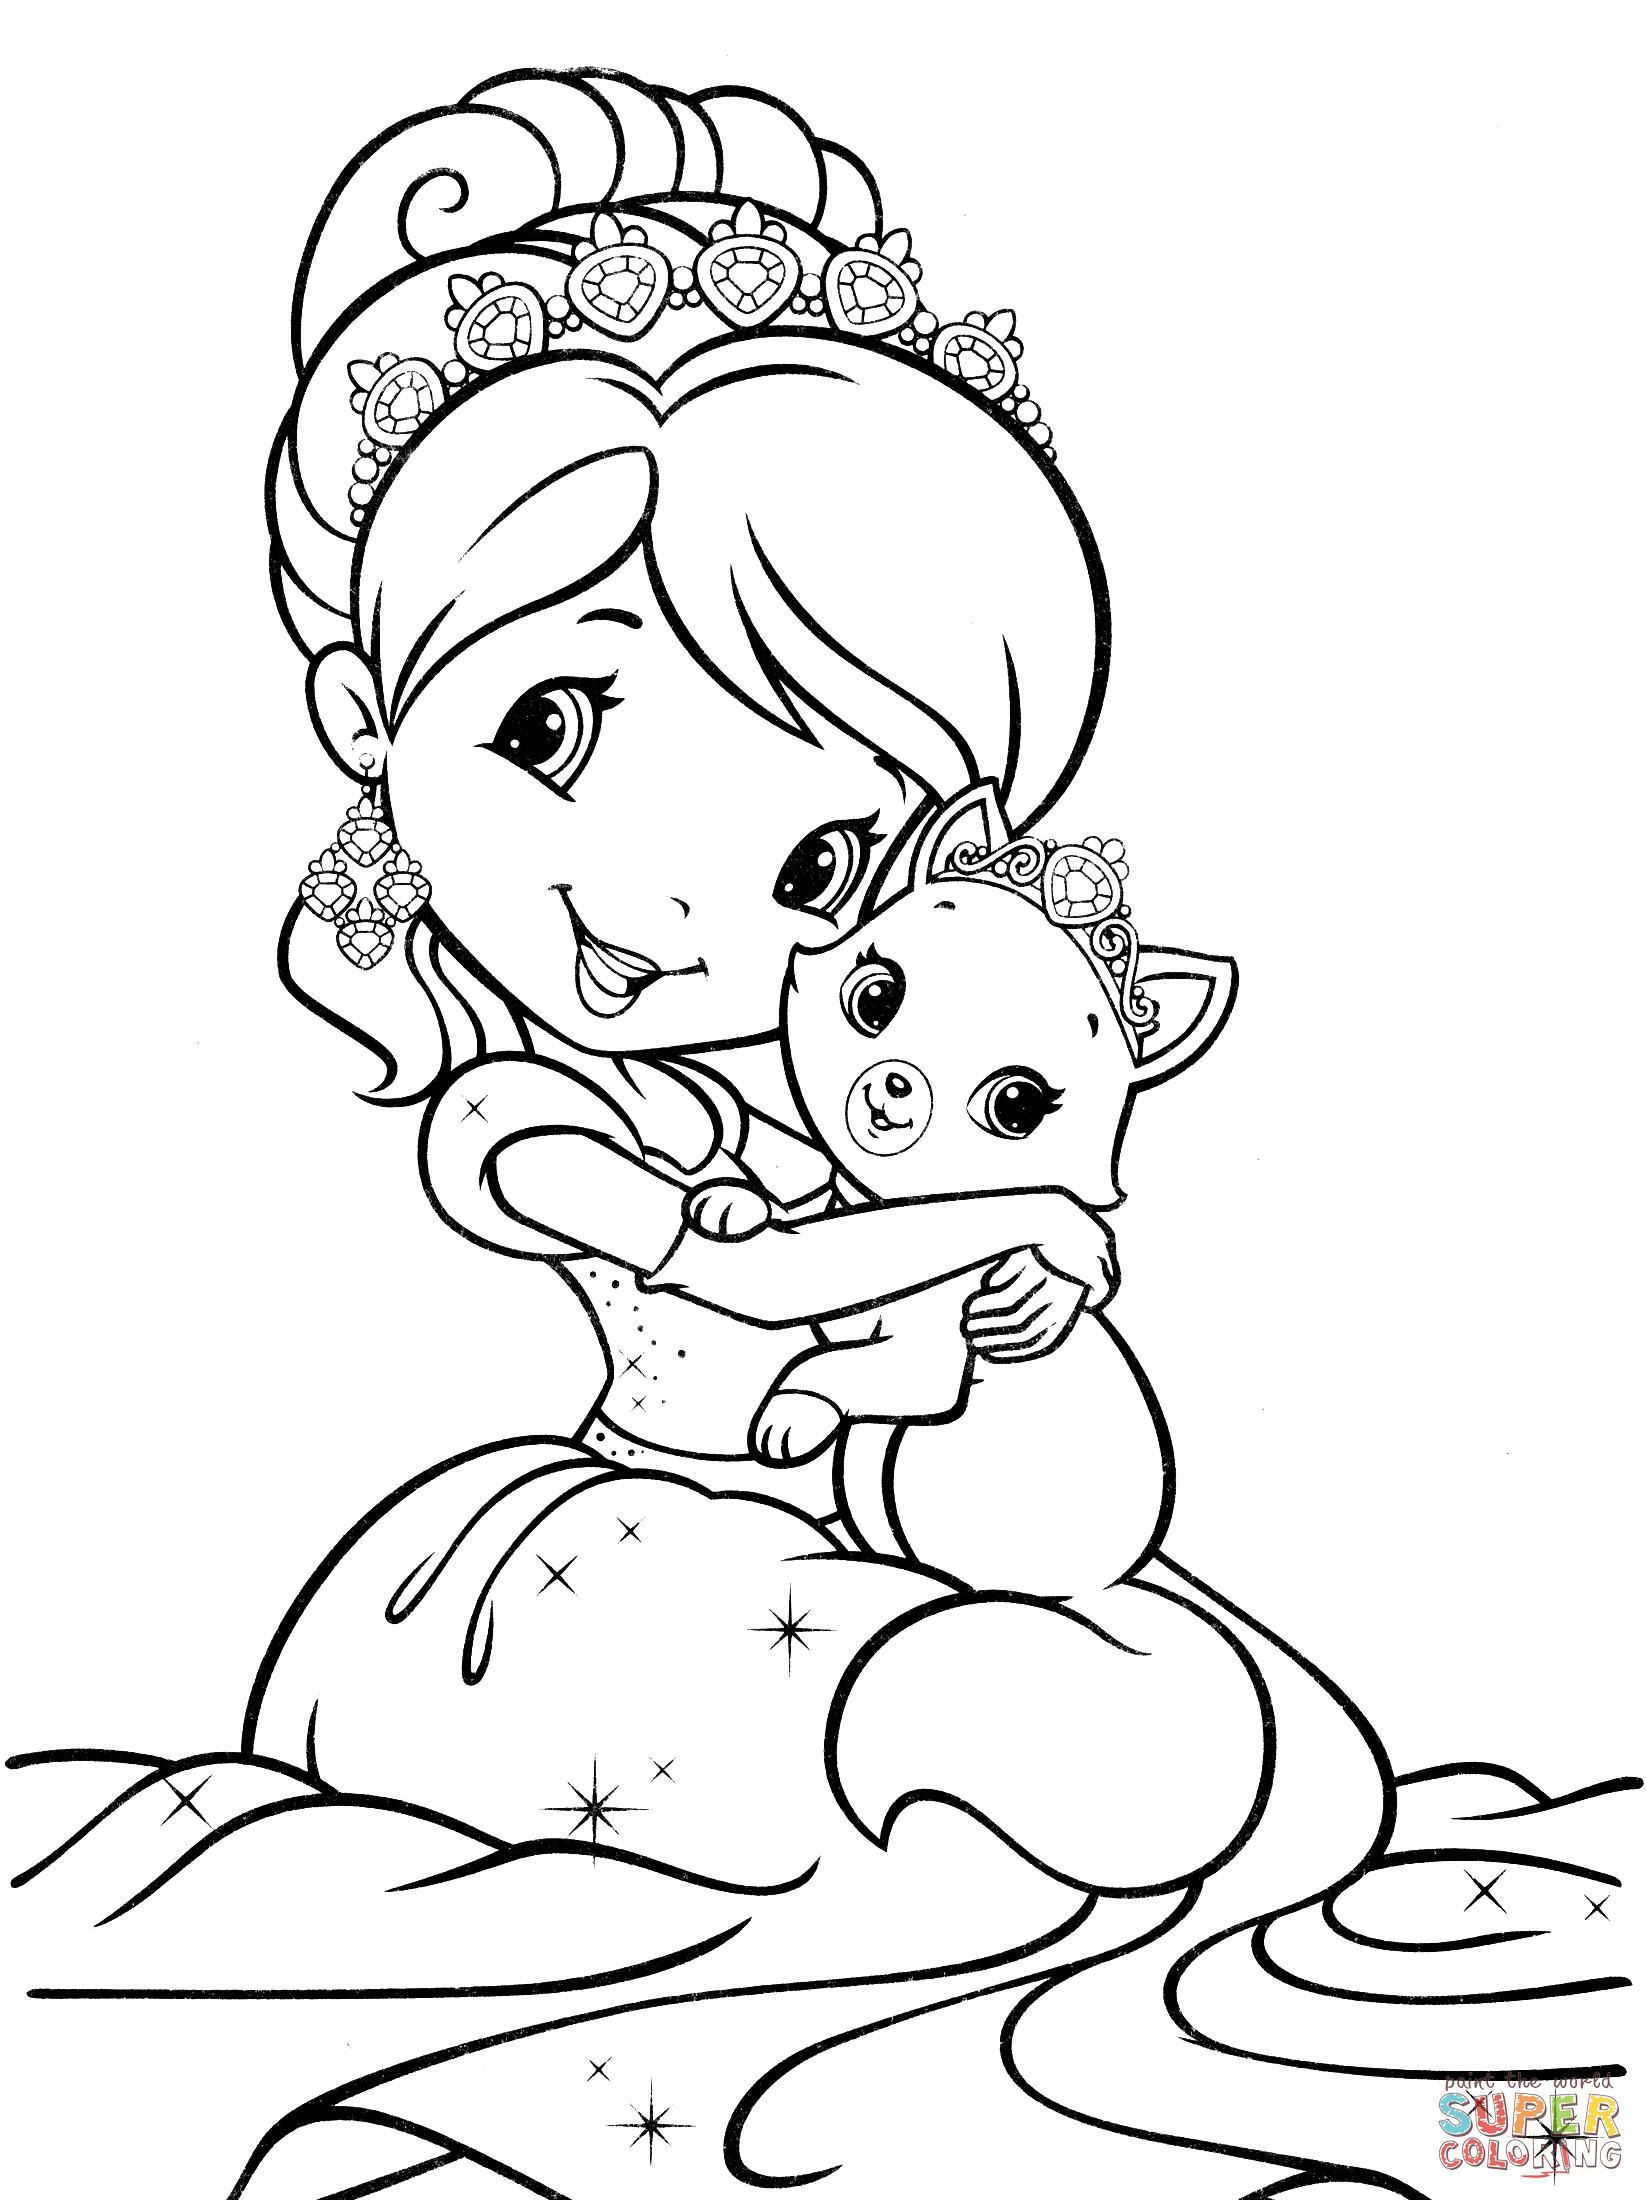 Strawberry Shortcake Coloring Page  Strawberry Shortcake Mermaid coloring page